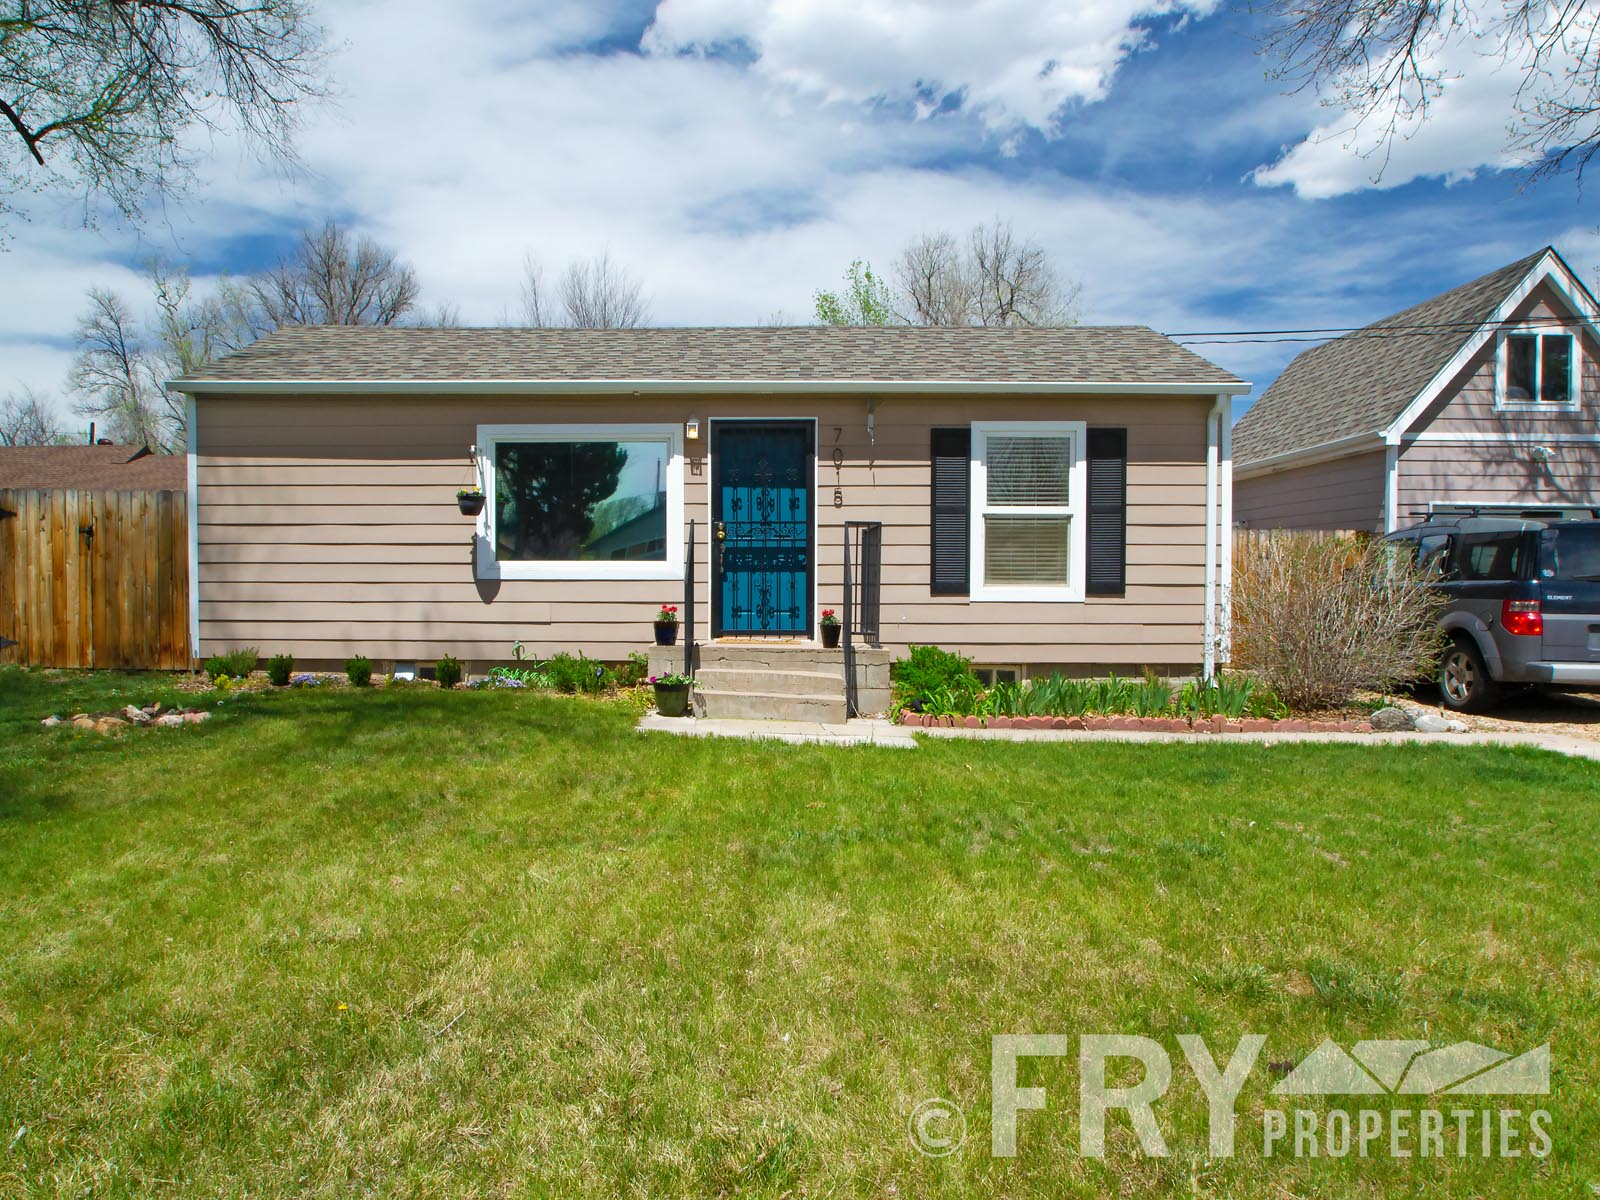 7015 W 24th Ave_03